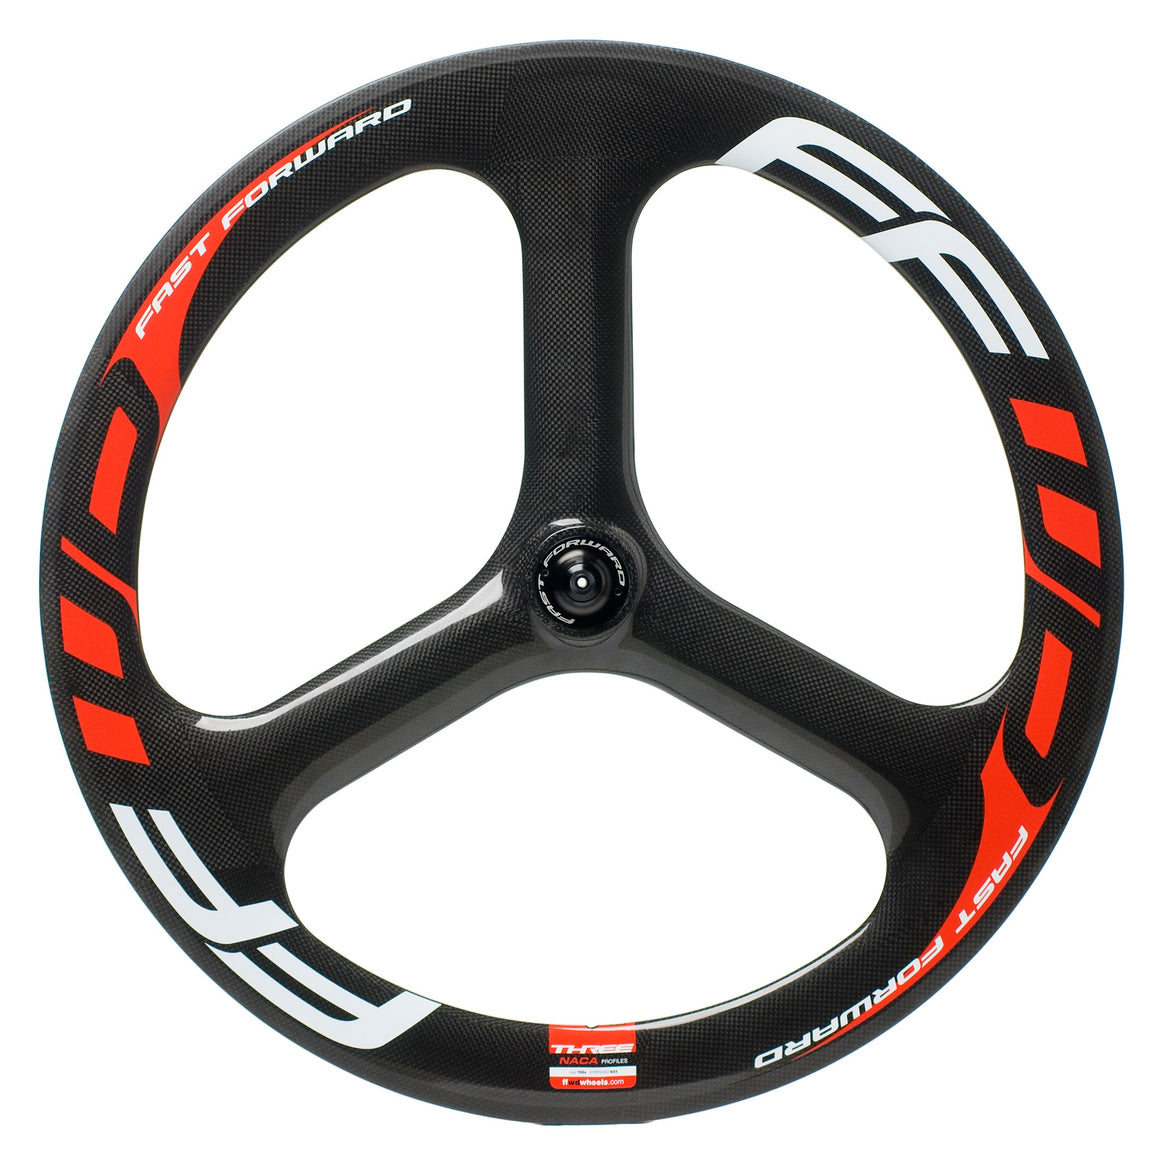 FFWD - Carbon Tubular Three Spoke - Front Wheel - Bike Wheels